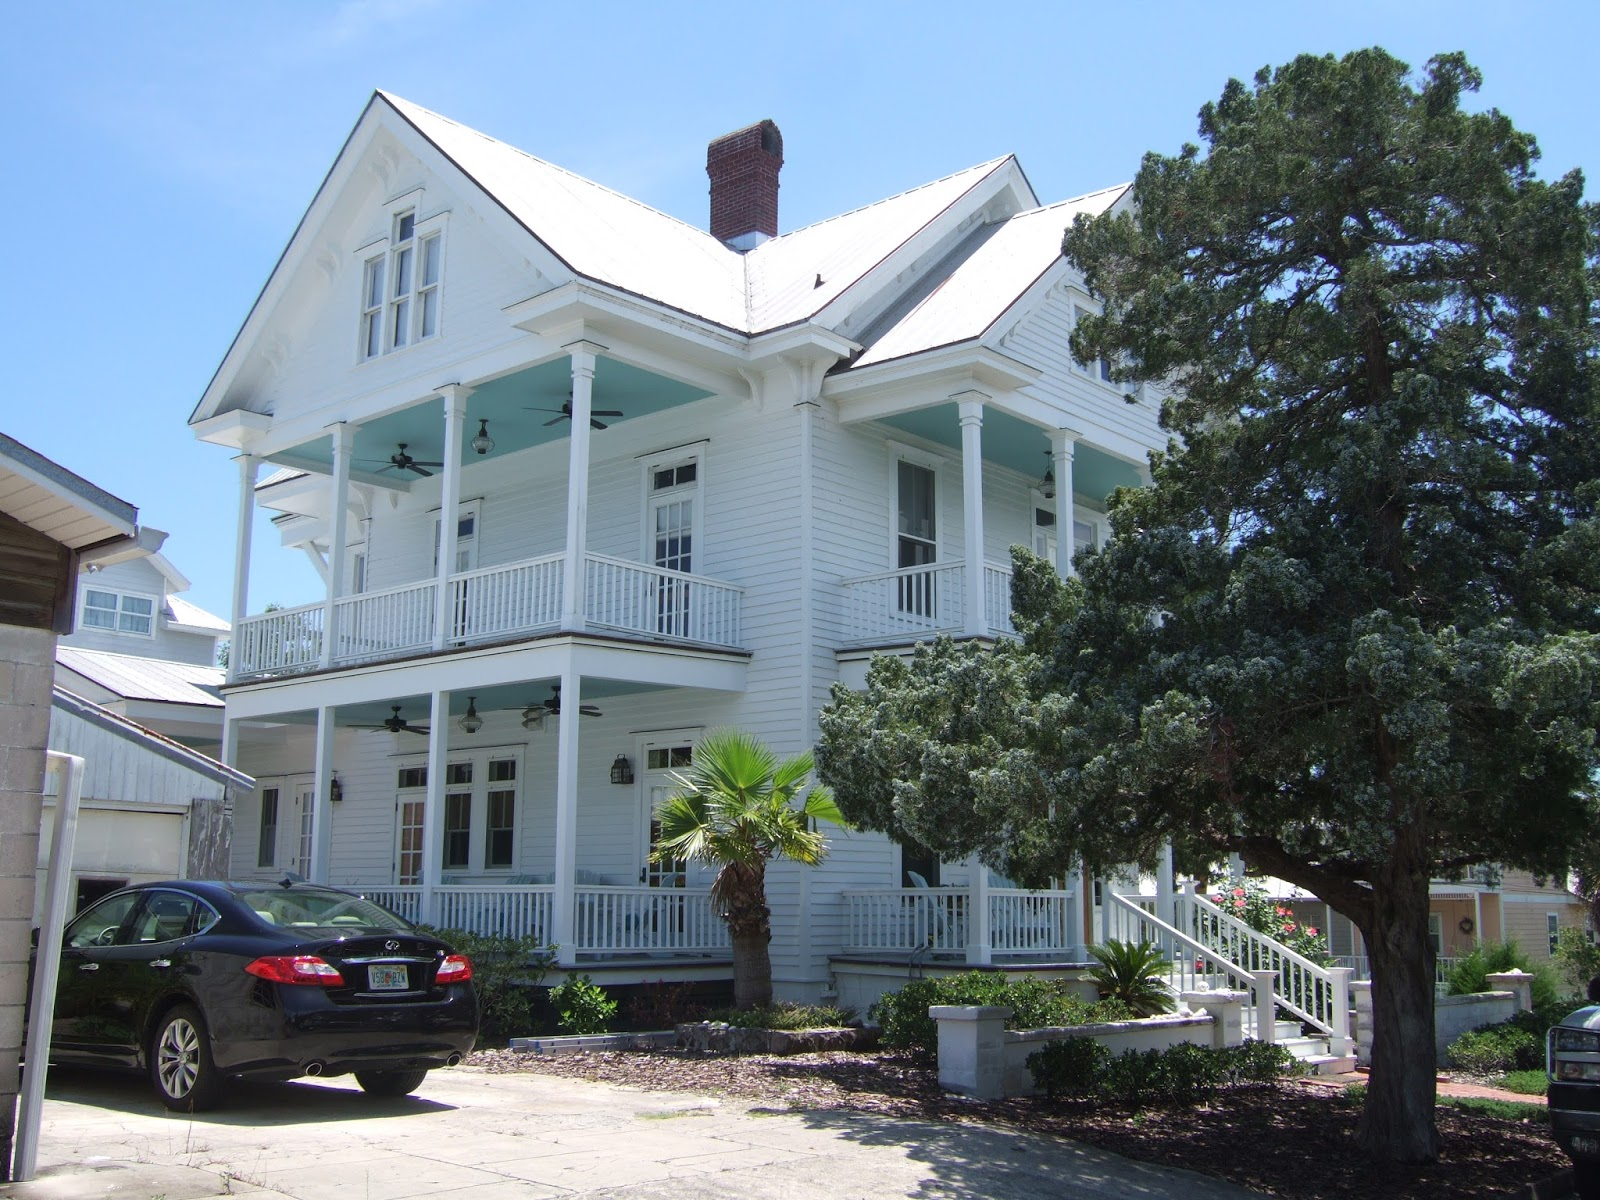 Prime Easy Life Meal And Party Planning Cedar Key Old Florida Beauty Download Free Architecture Designs Sospemadebymaigaardcom